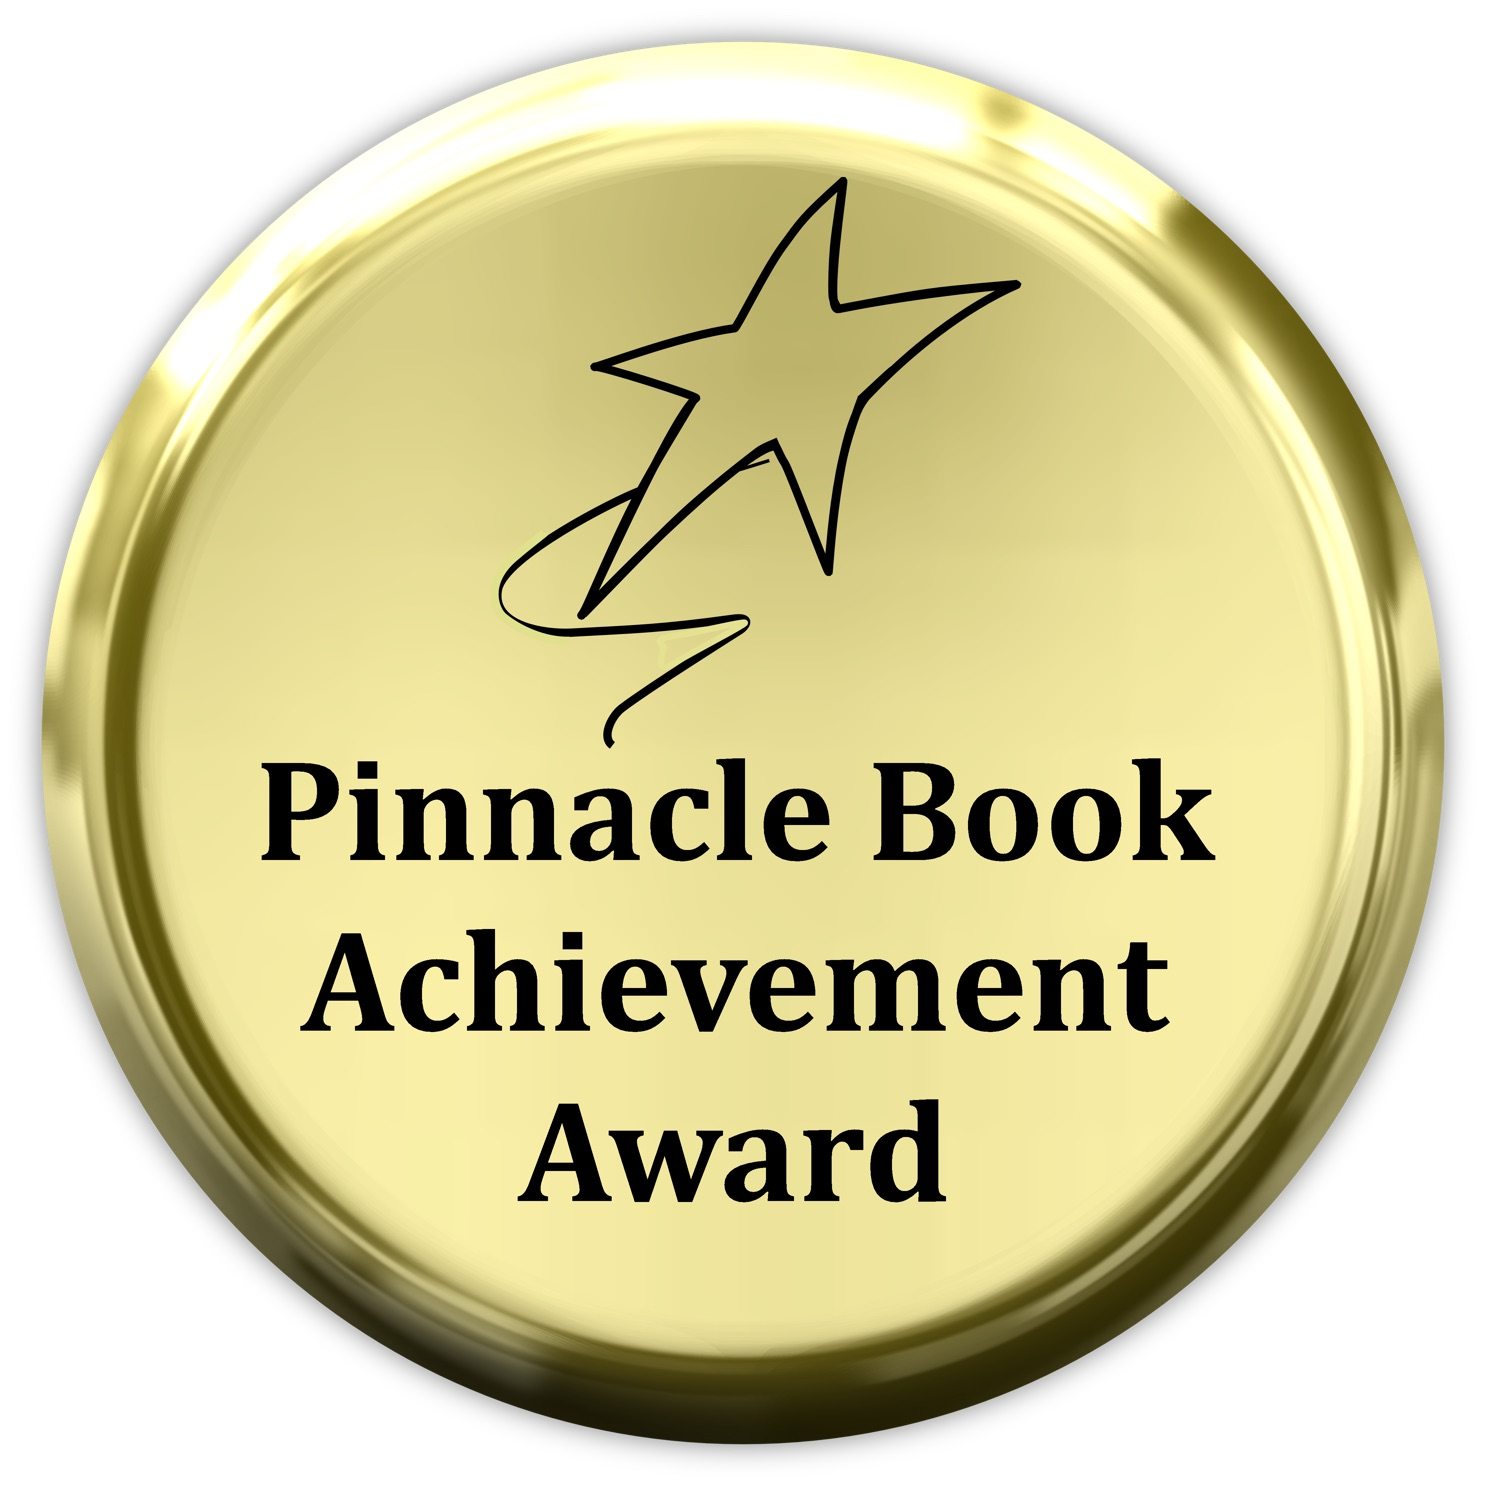 Abby & Holly Book 5 - Winner of Pinnacle Book Achievement Award